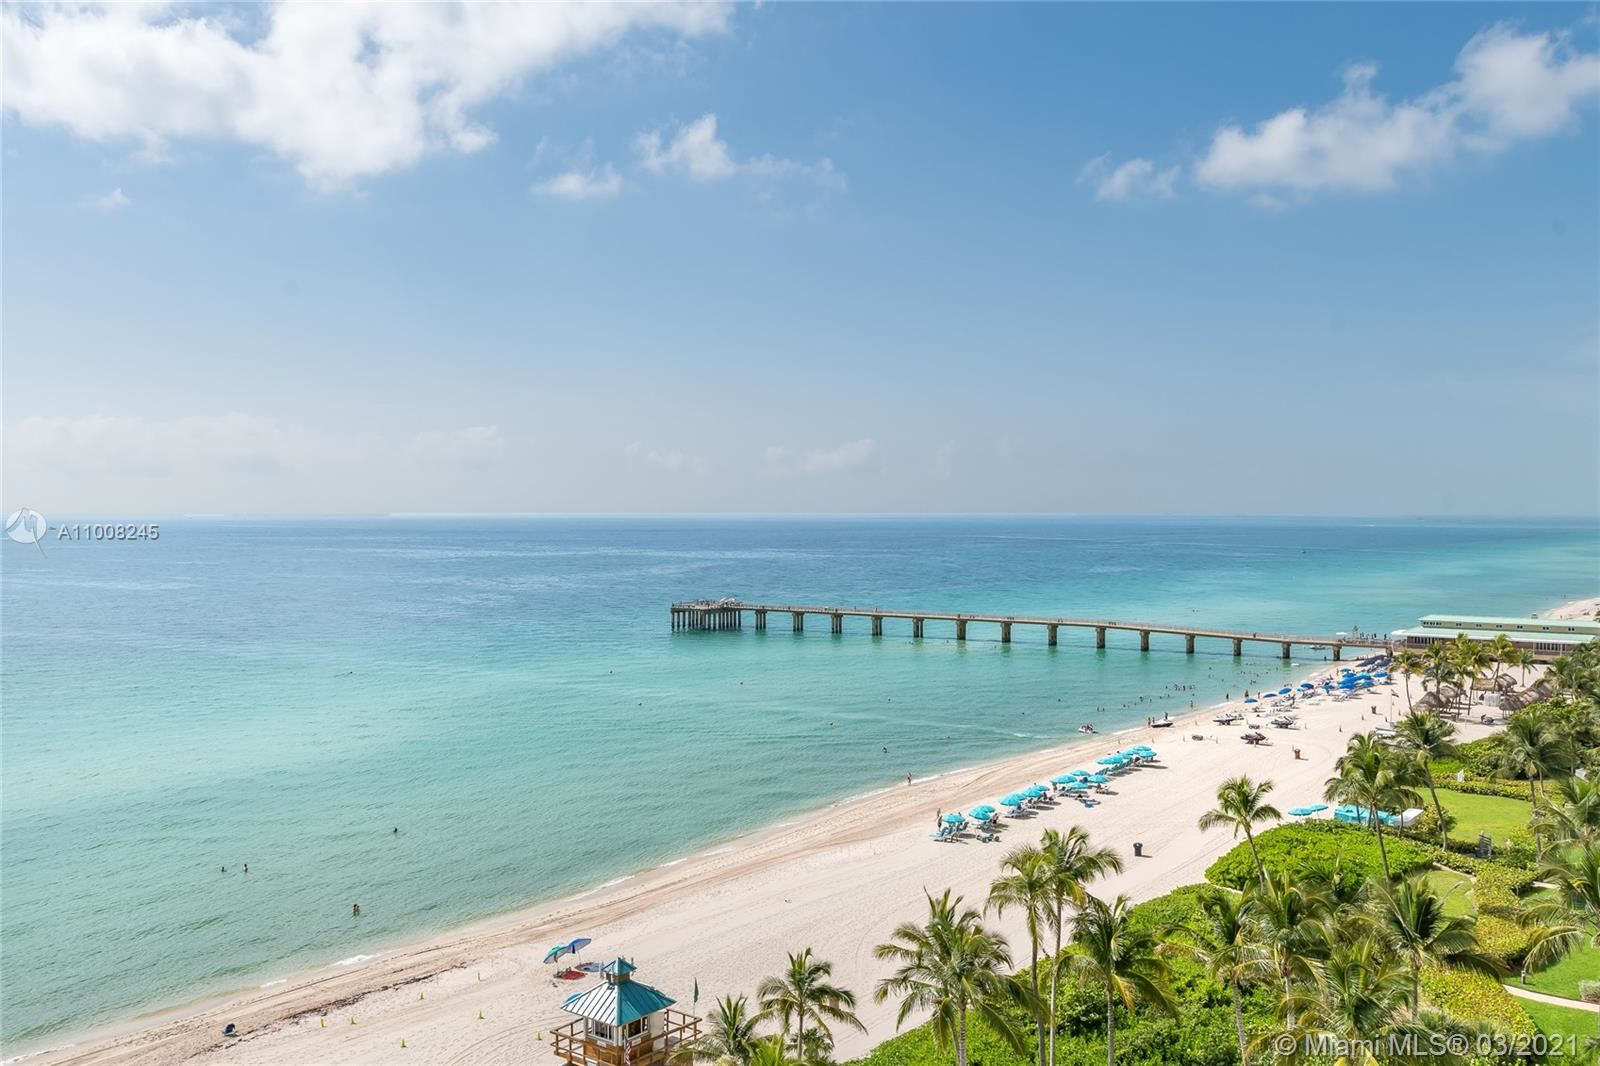 Photo of 16901 Collins Ave #905, Sunny Isles Beach, FL 33160 (MLS # A11008245)